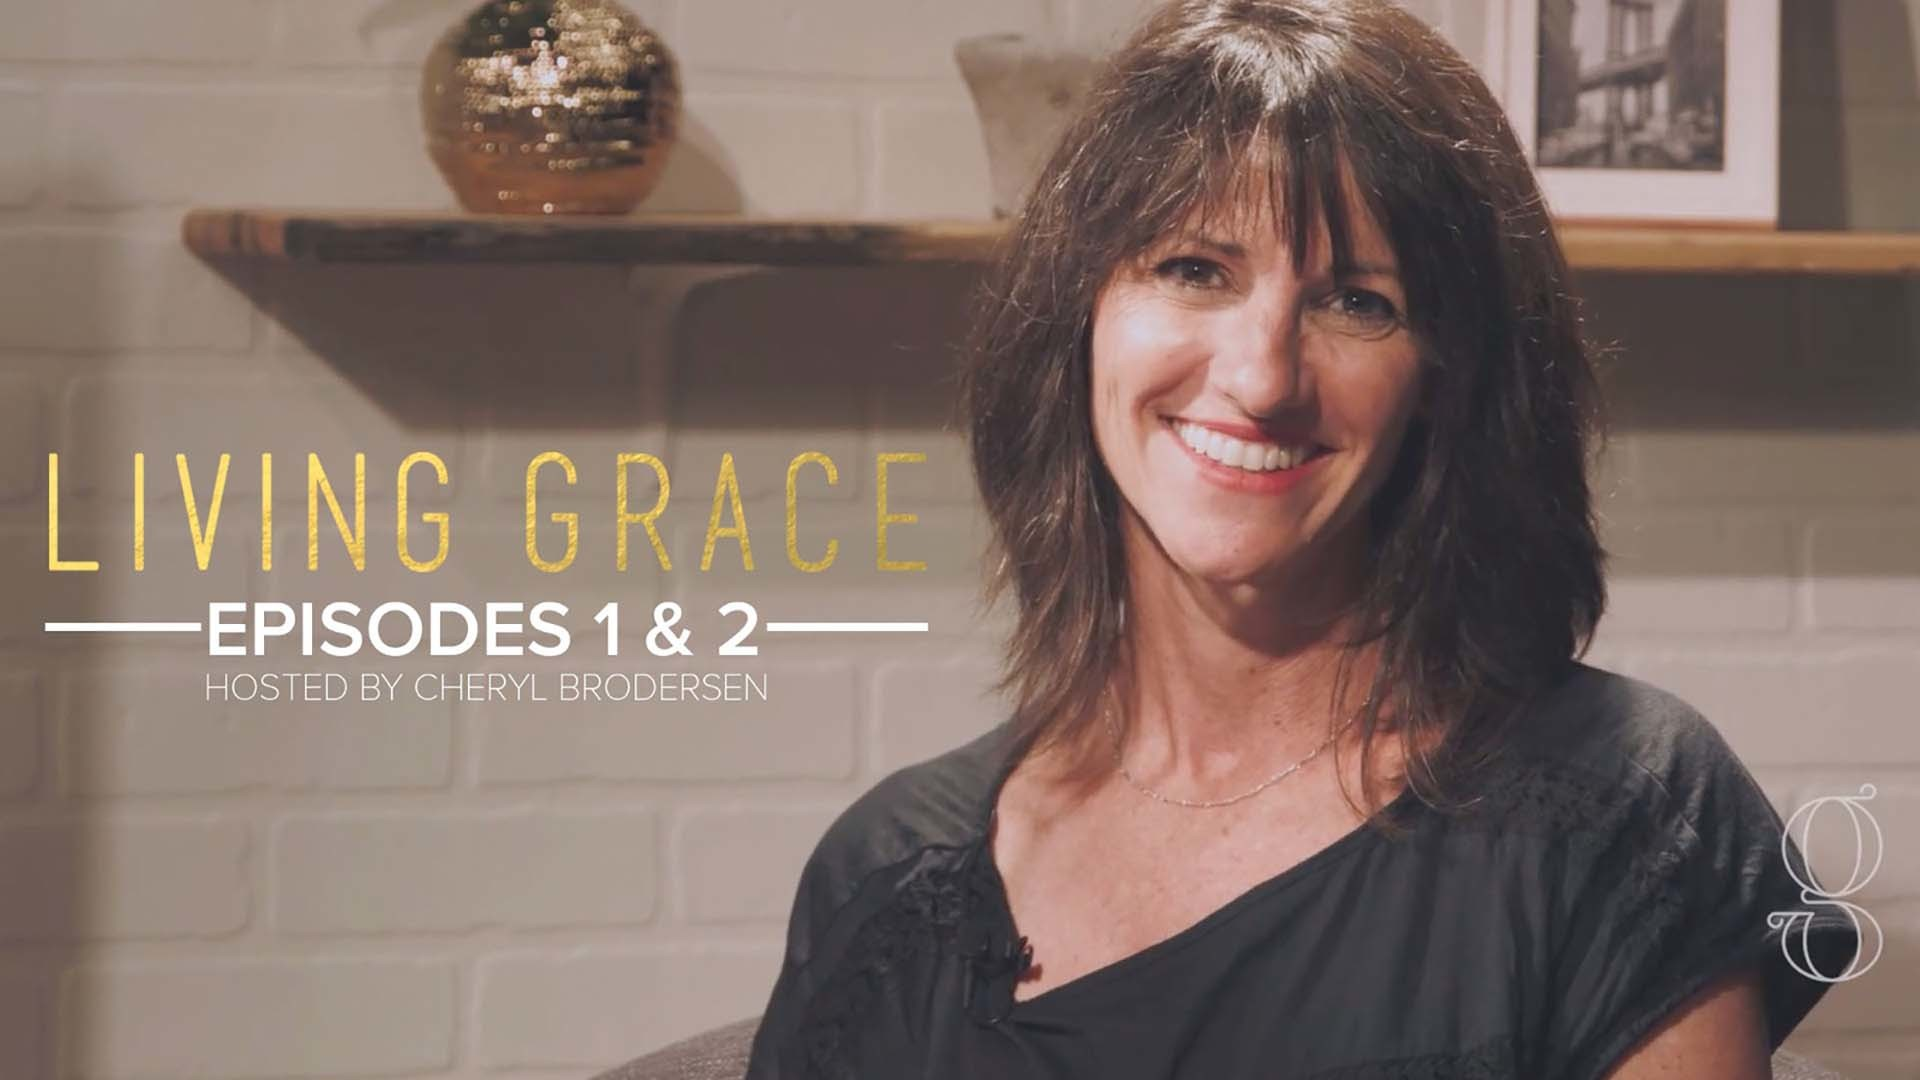 Living Grace Episode 2 - Interview with Hannah Overton